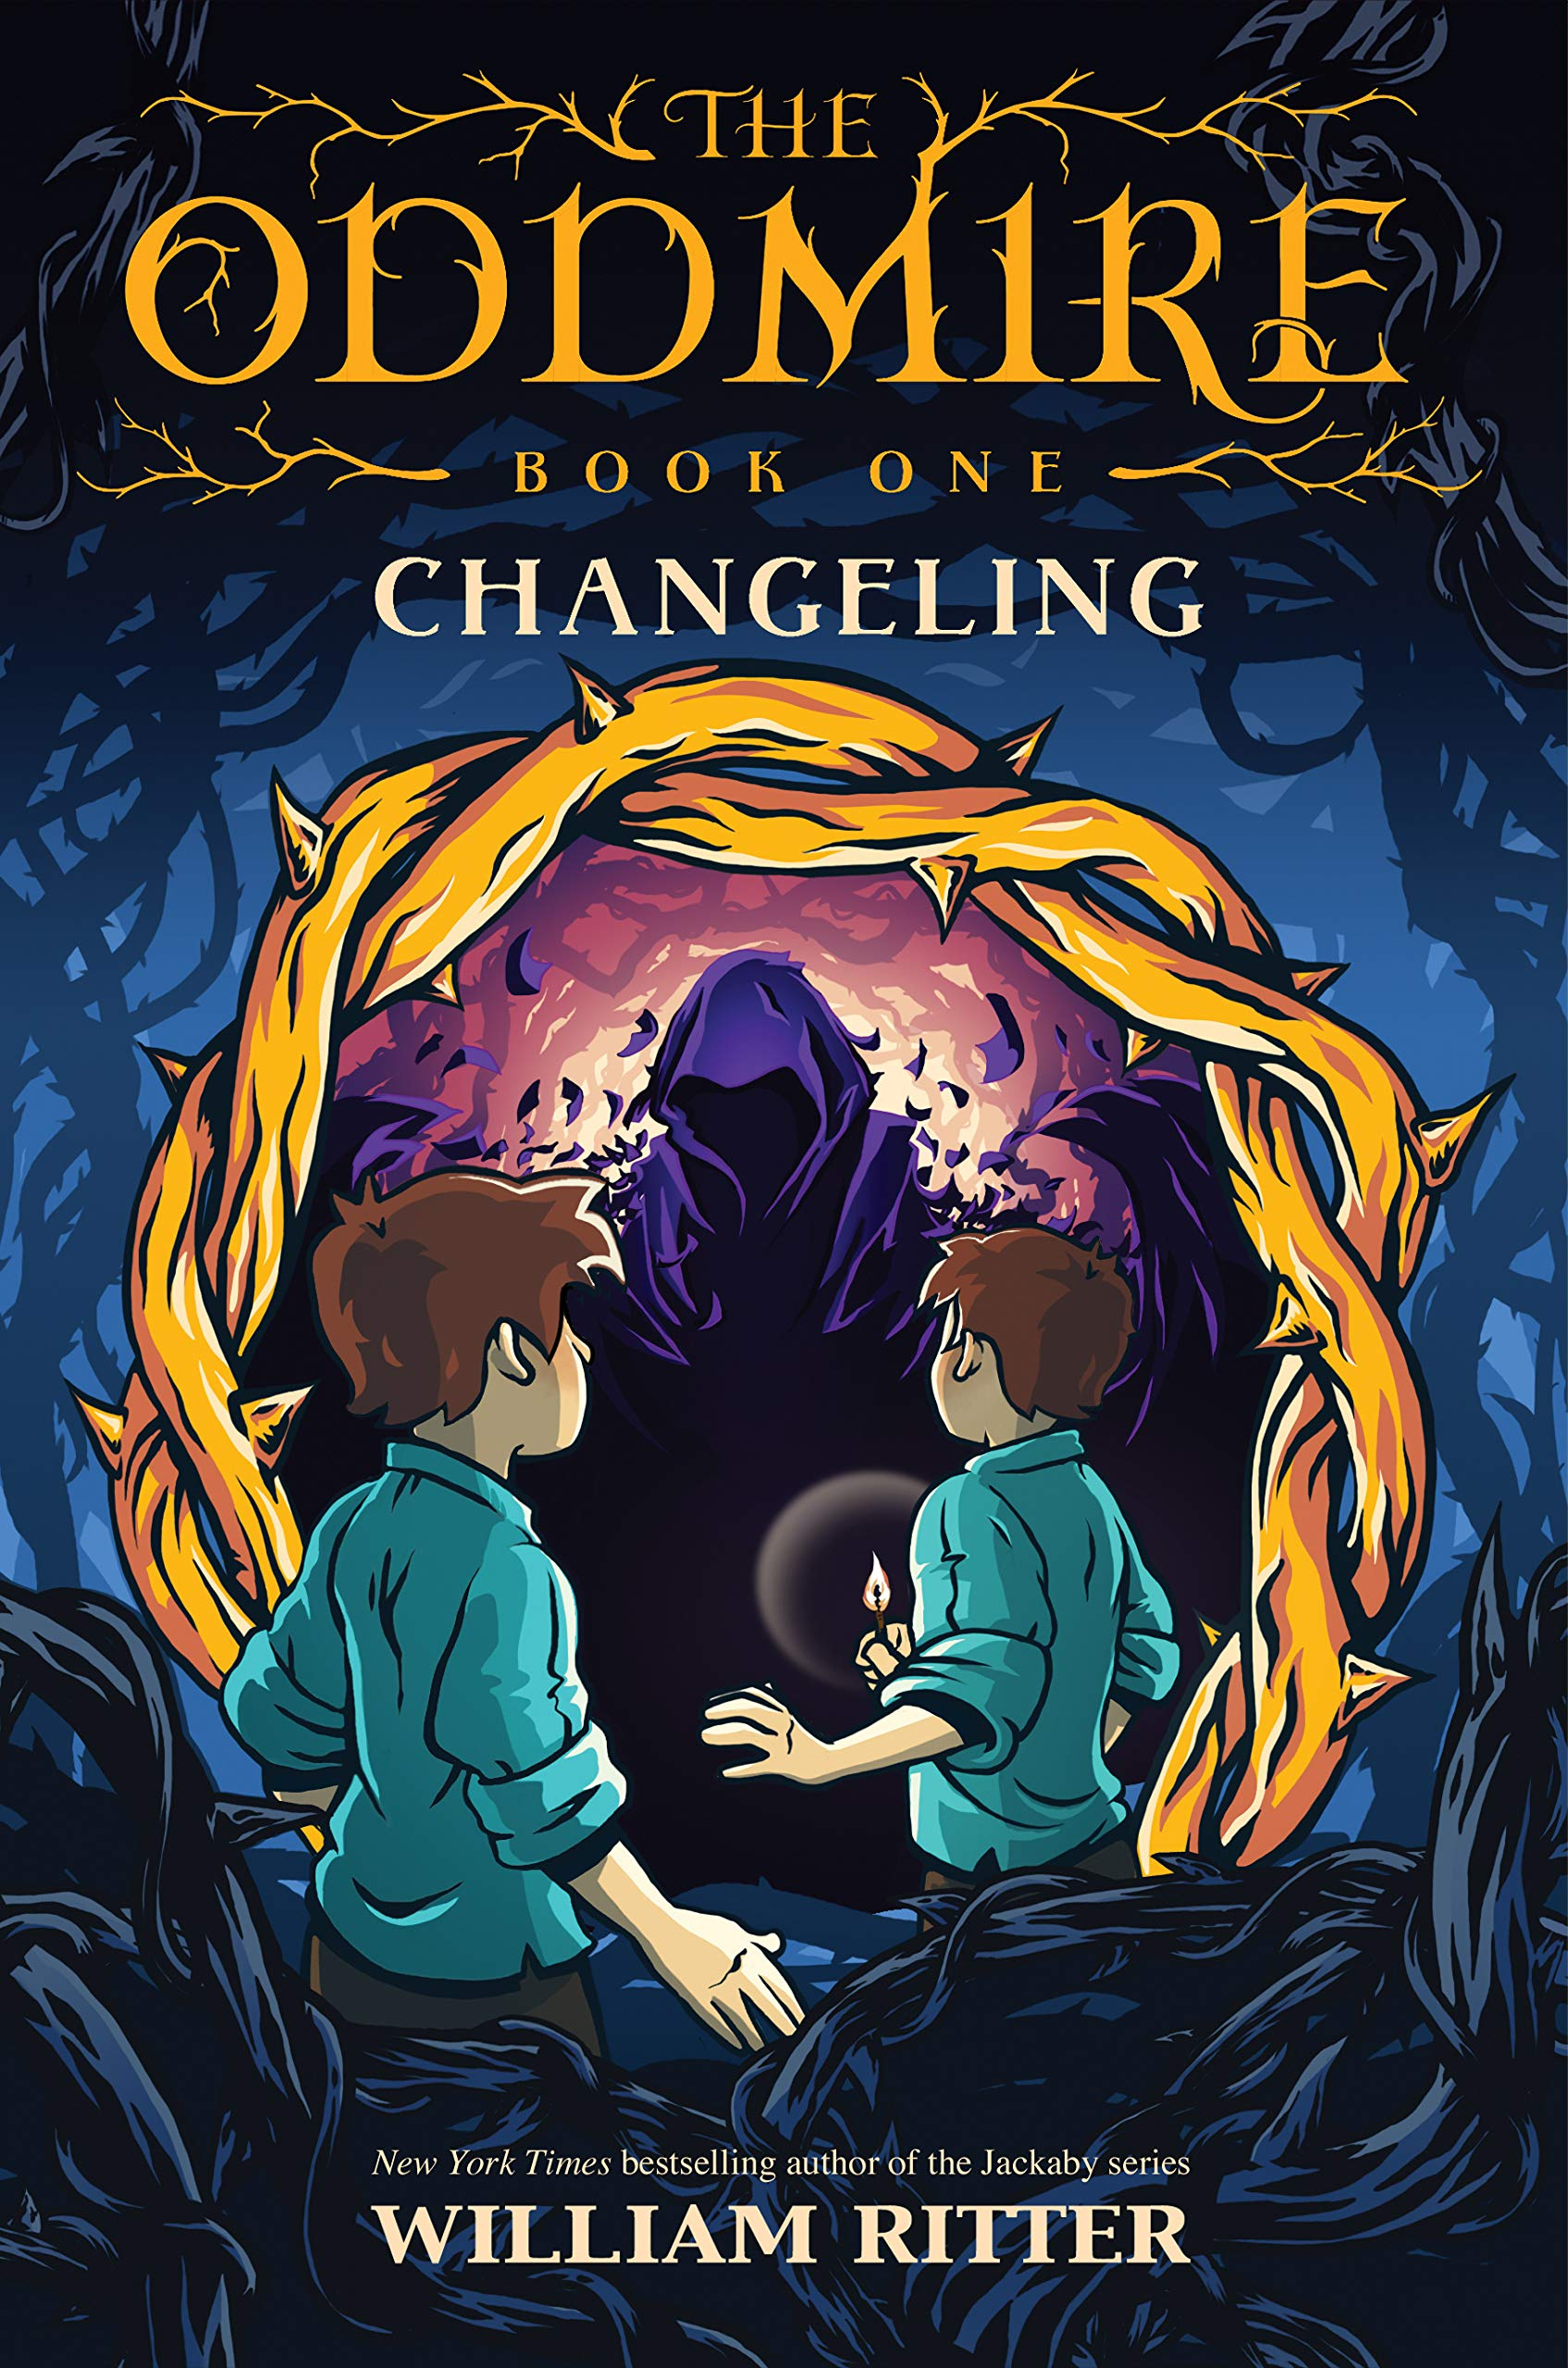 THE ODDMIRE: Book I Changeling & All Sorts of Magic!